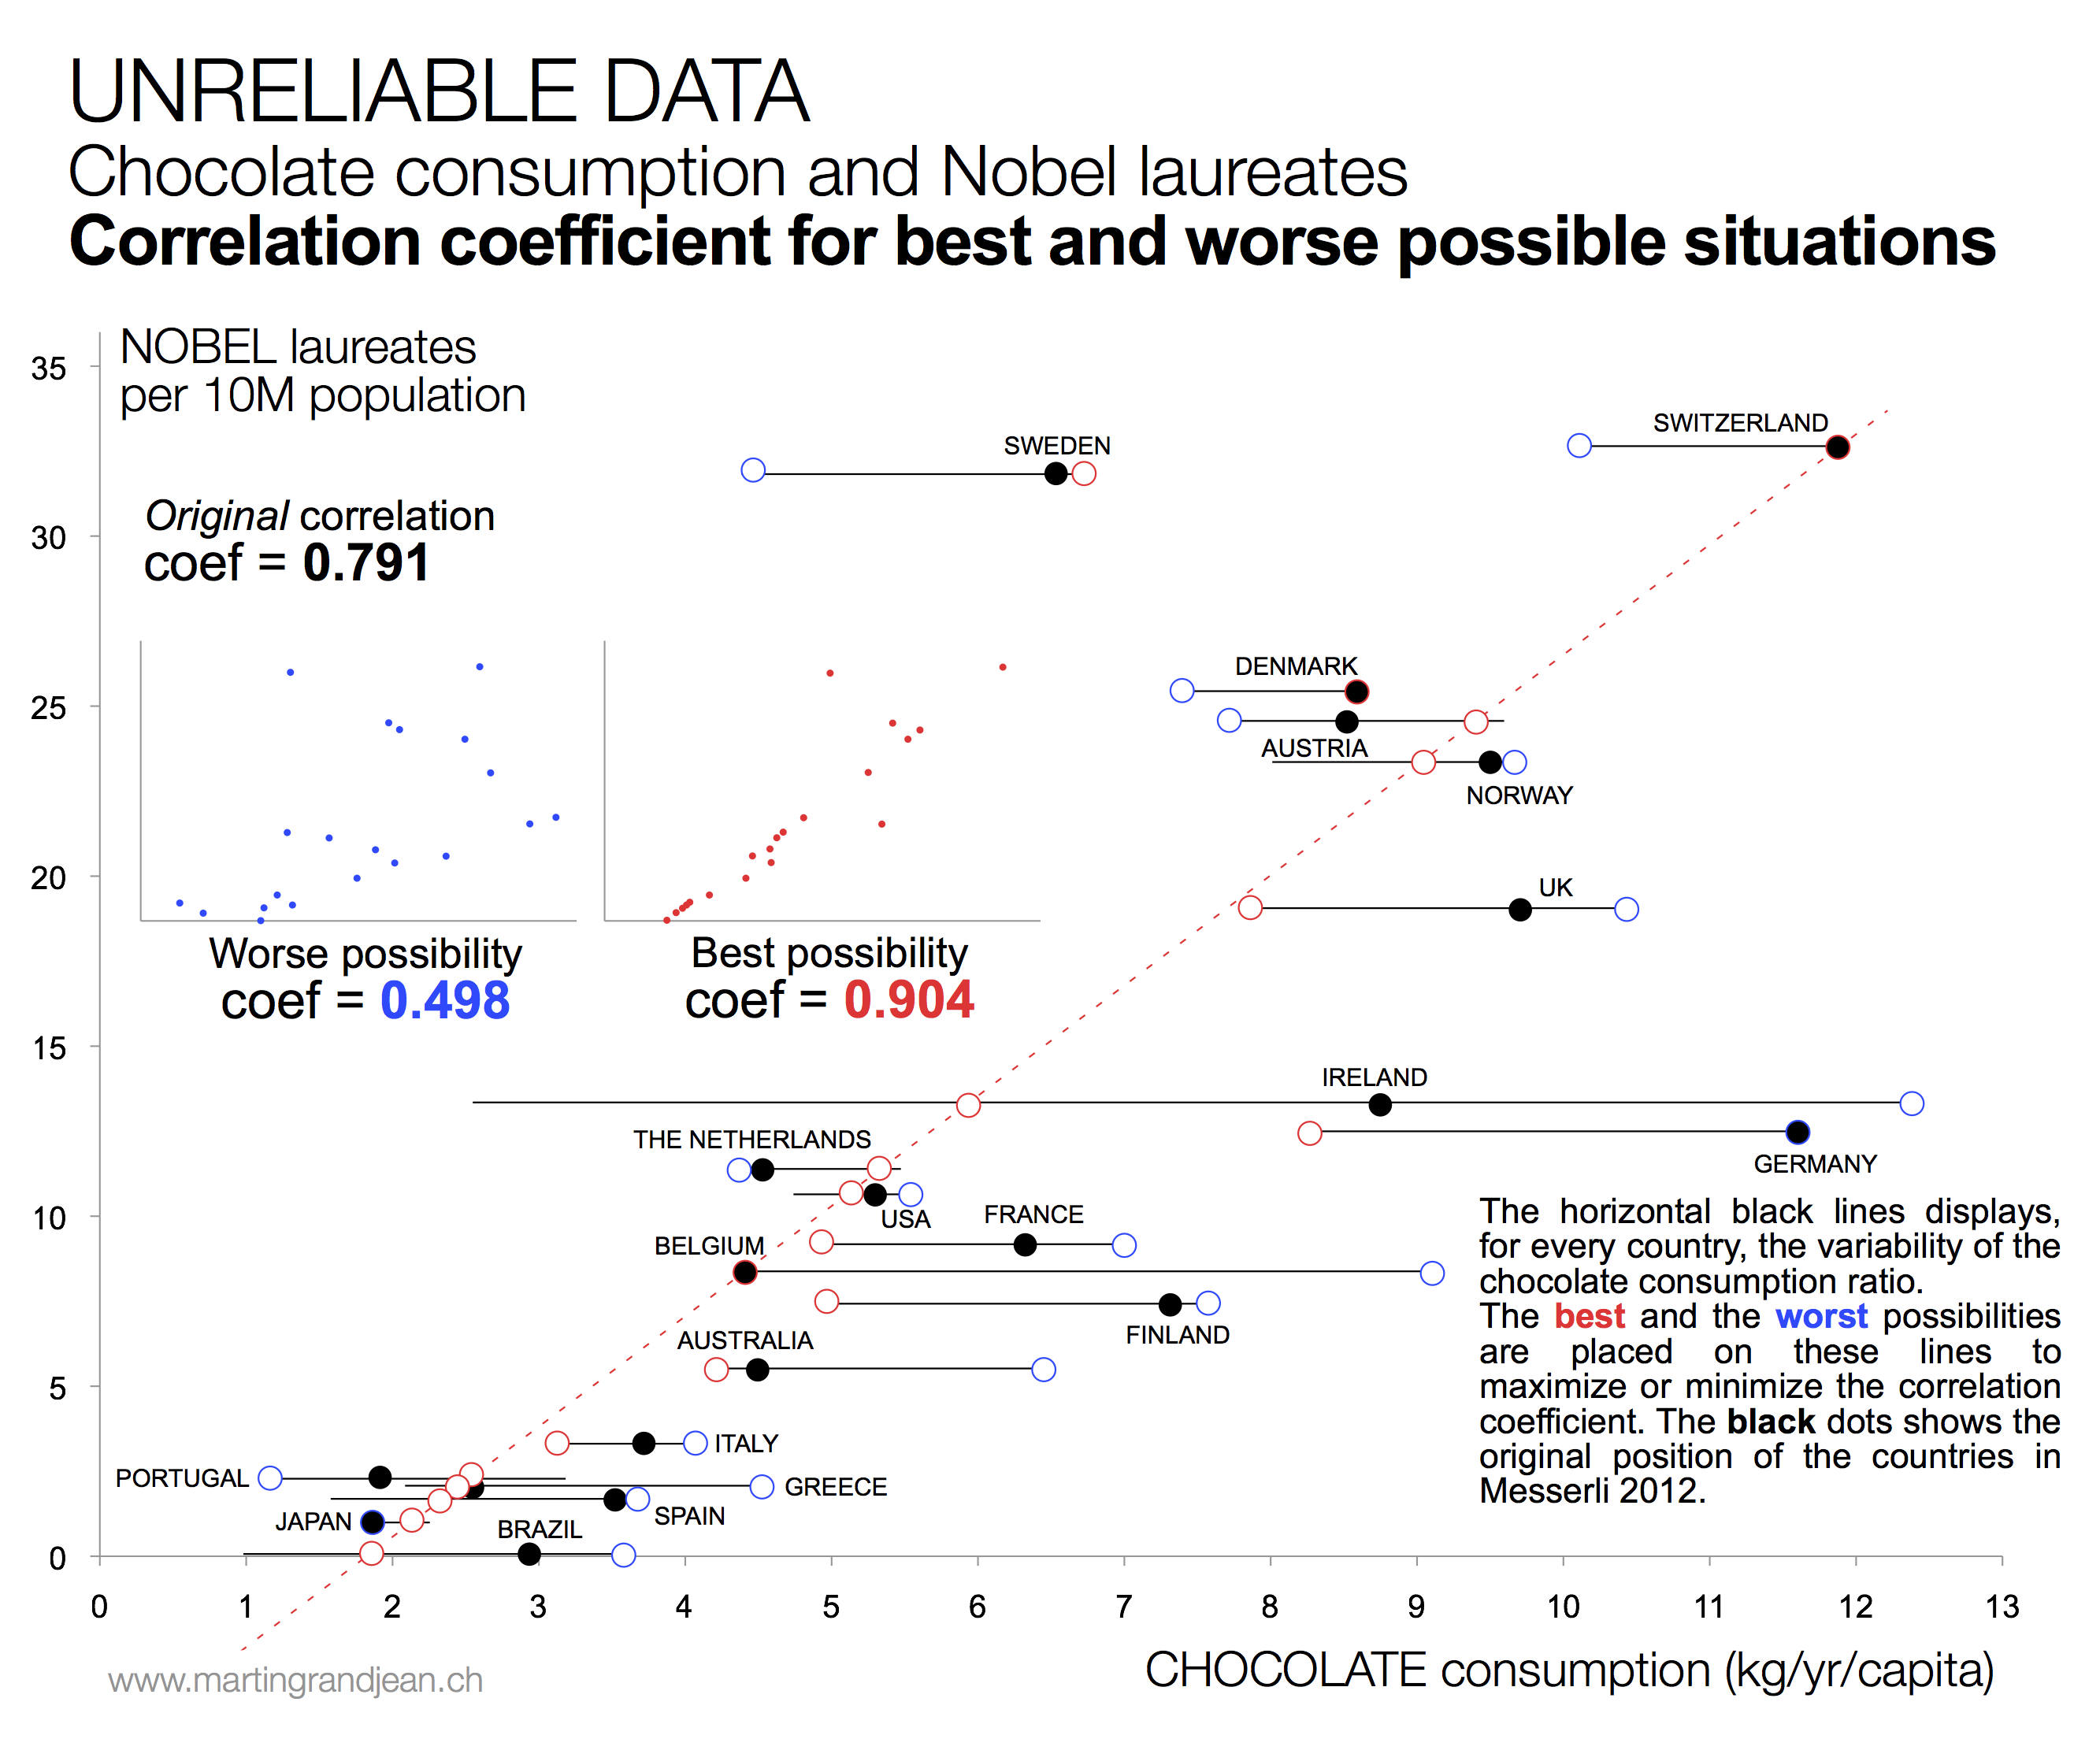 Chocolate Consumption and Nobel Laureates Correlation